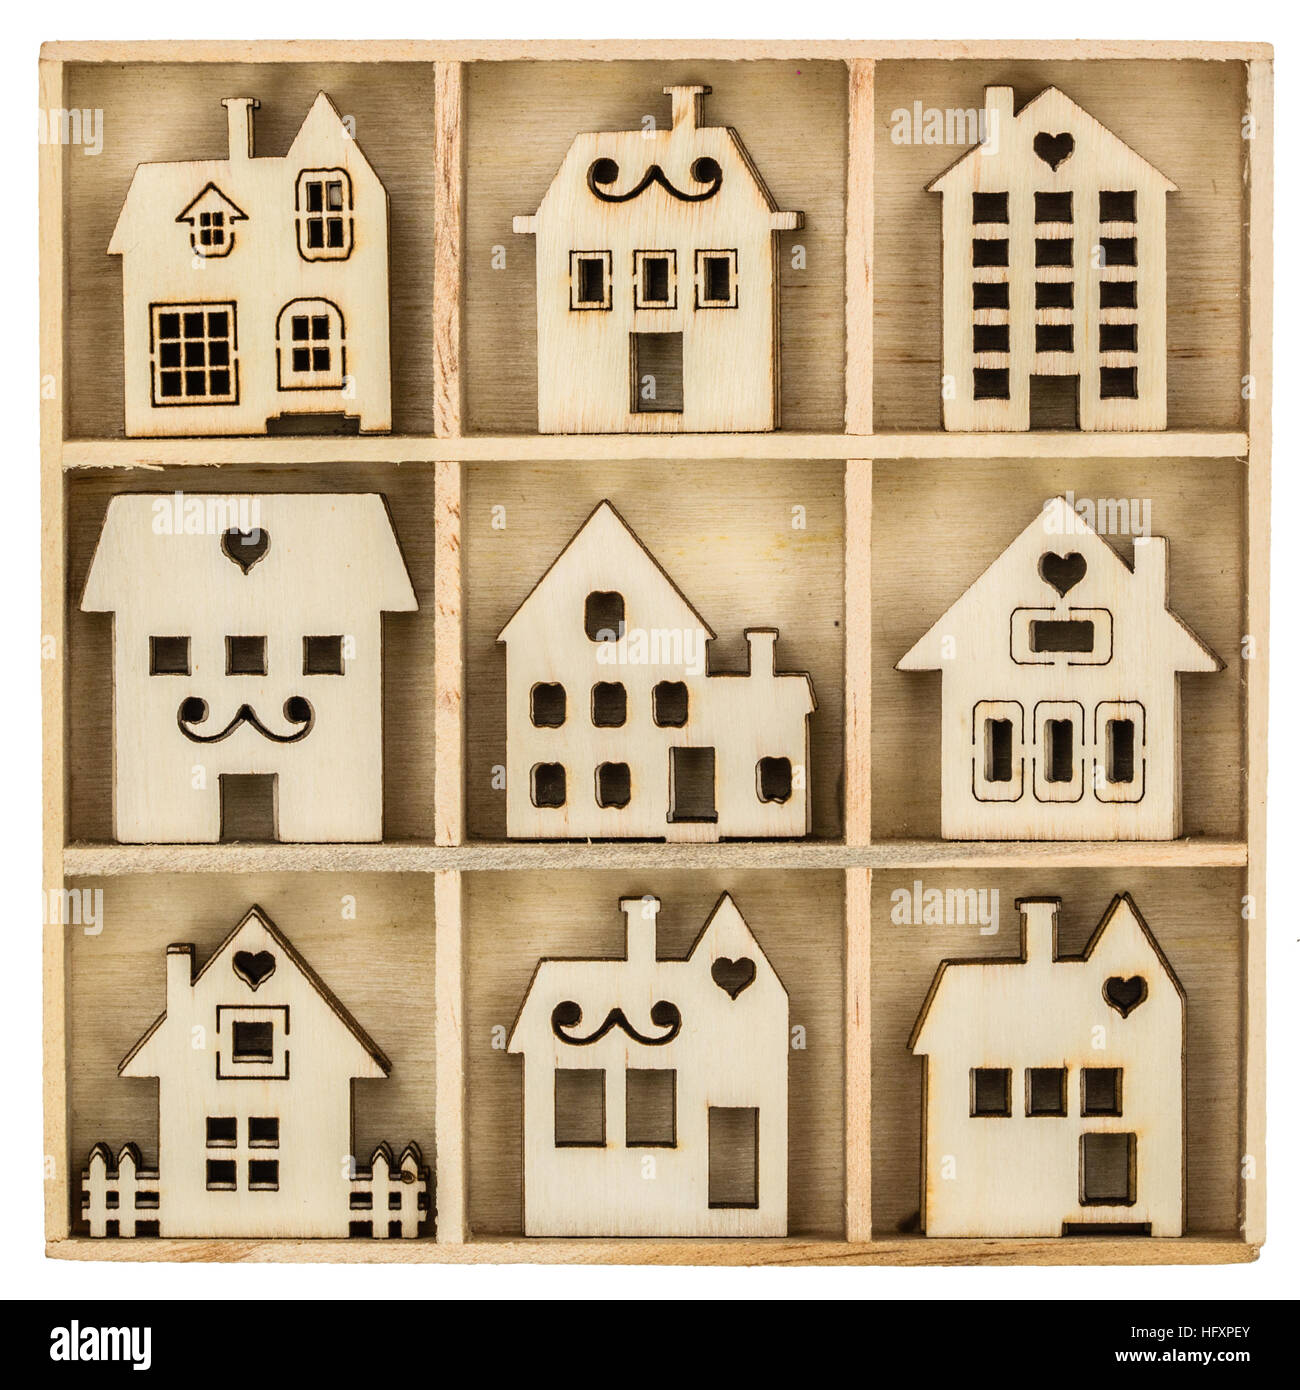 Set of wooden facade houses in box, isolated on white background - Stock Image